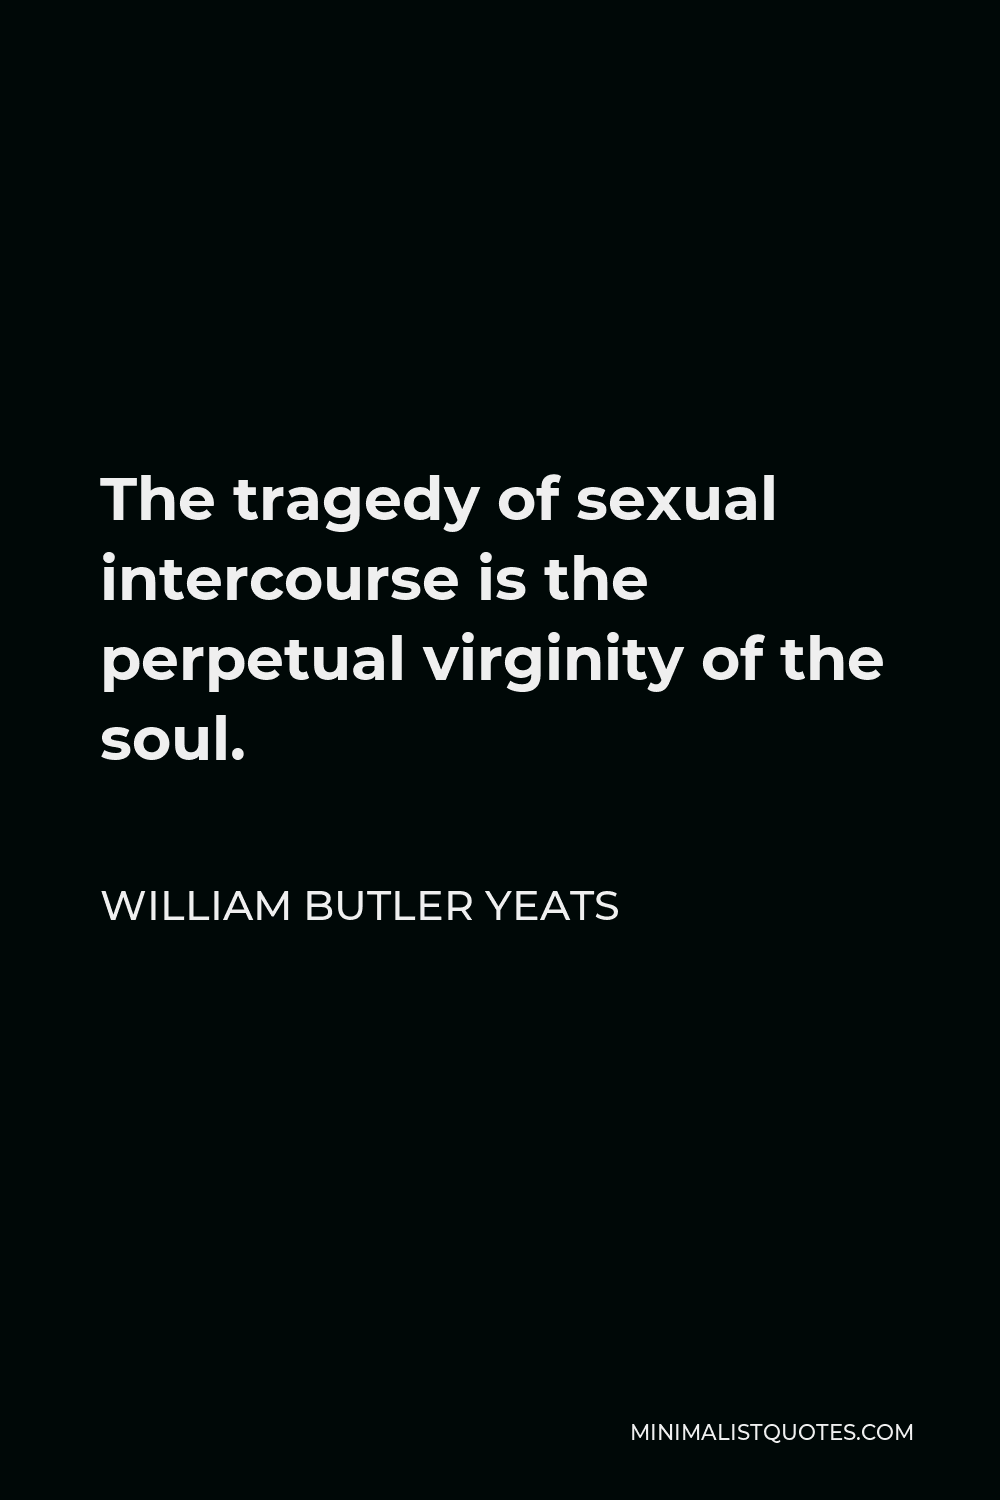 William Butler Yeats Quote - The tragedy of sexual intercourse is the perpetual virginity of the soul.